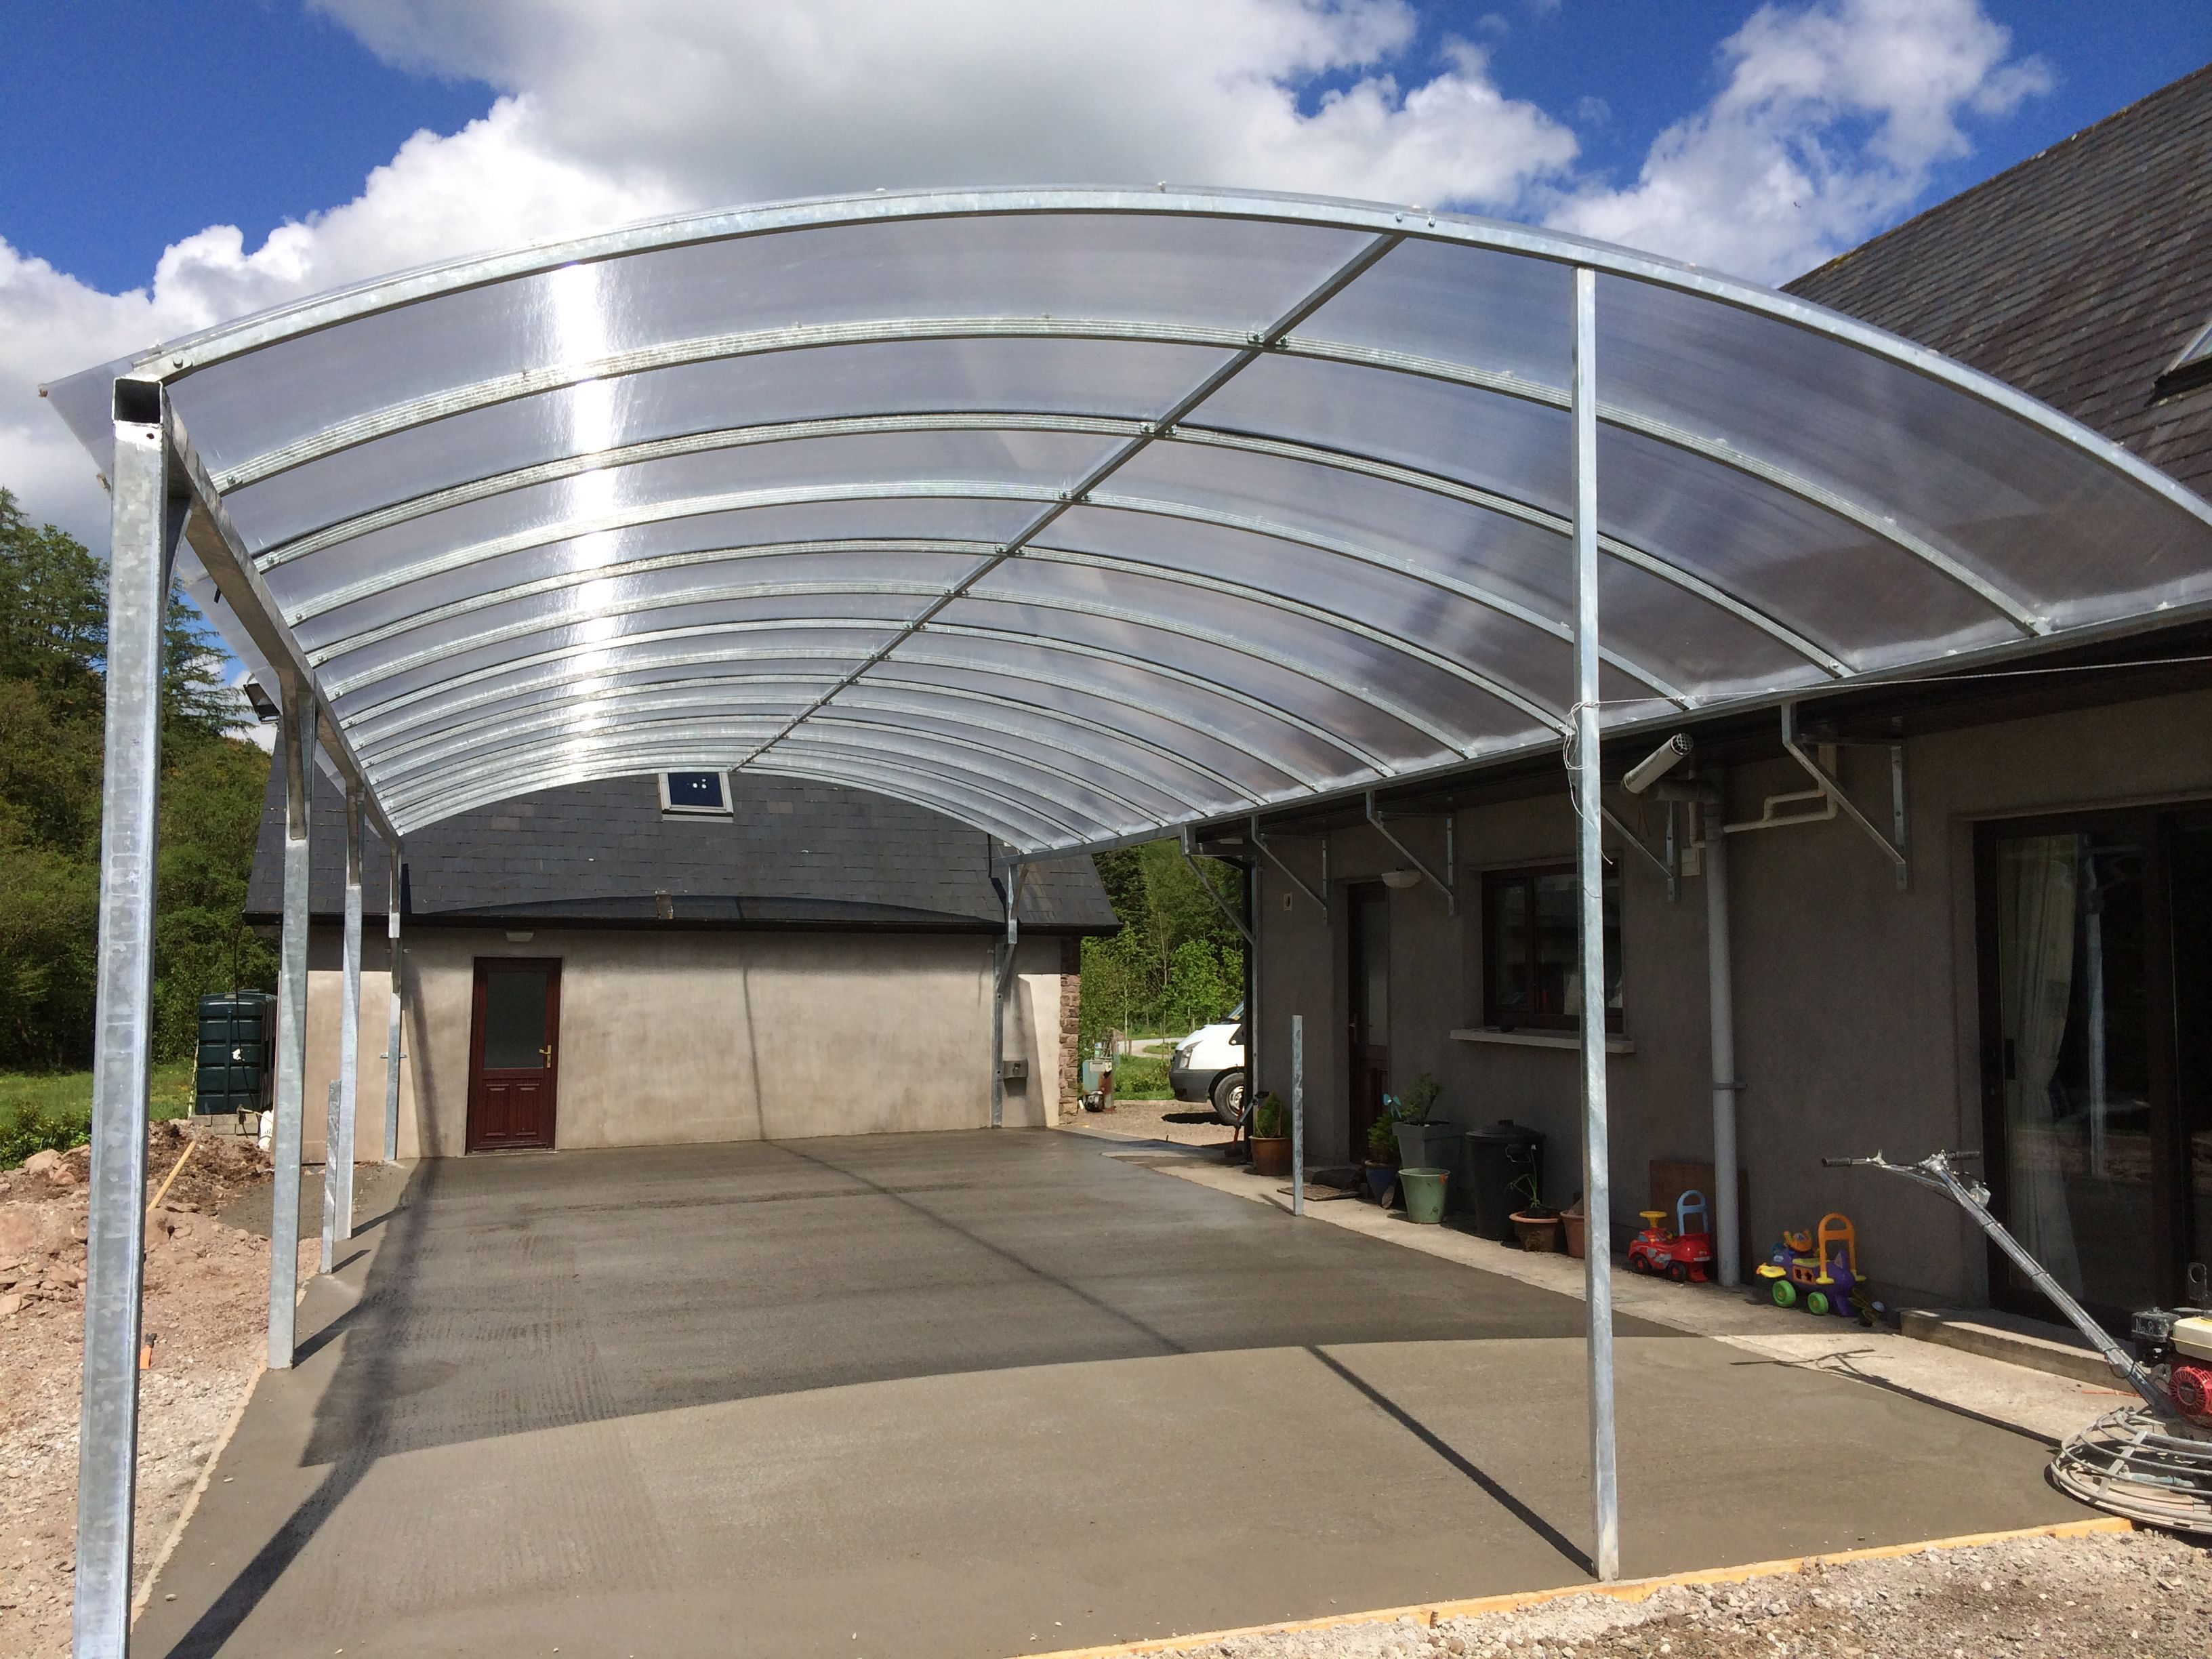 Multiwall Polycarbonate Sheet Used In Curved Roof Application Roof Architecture Flat Roof Shed Modern Roofing